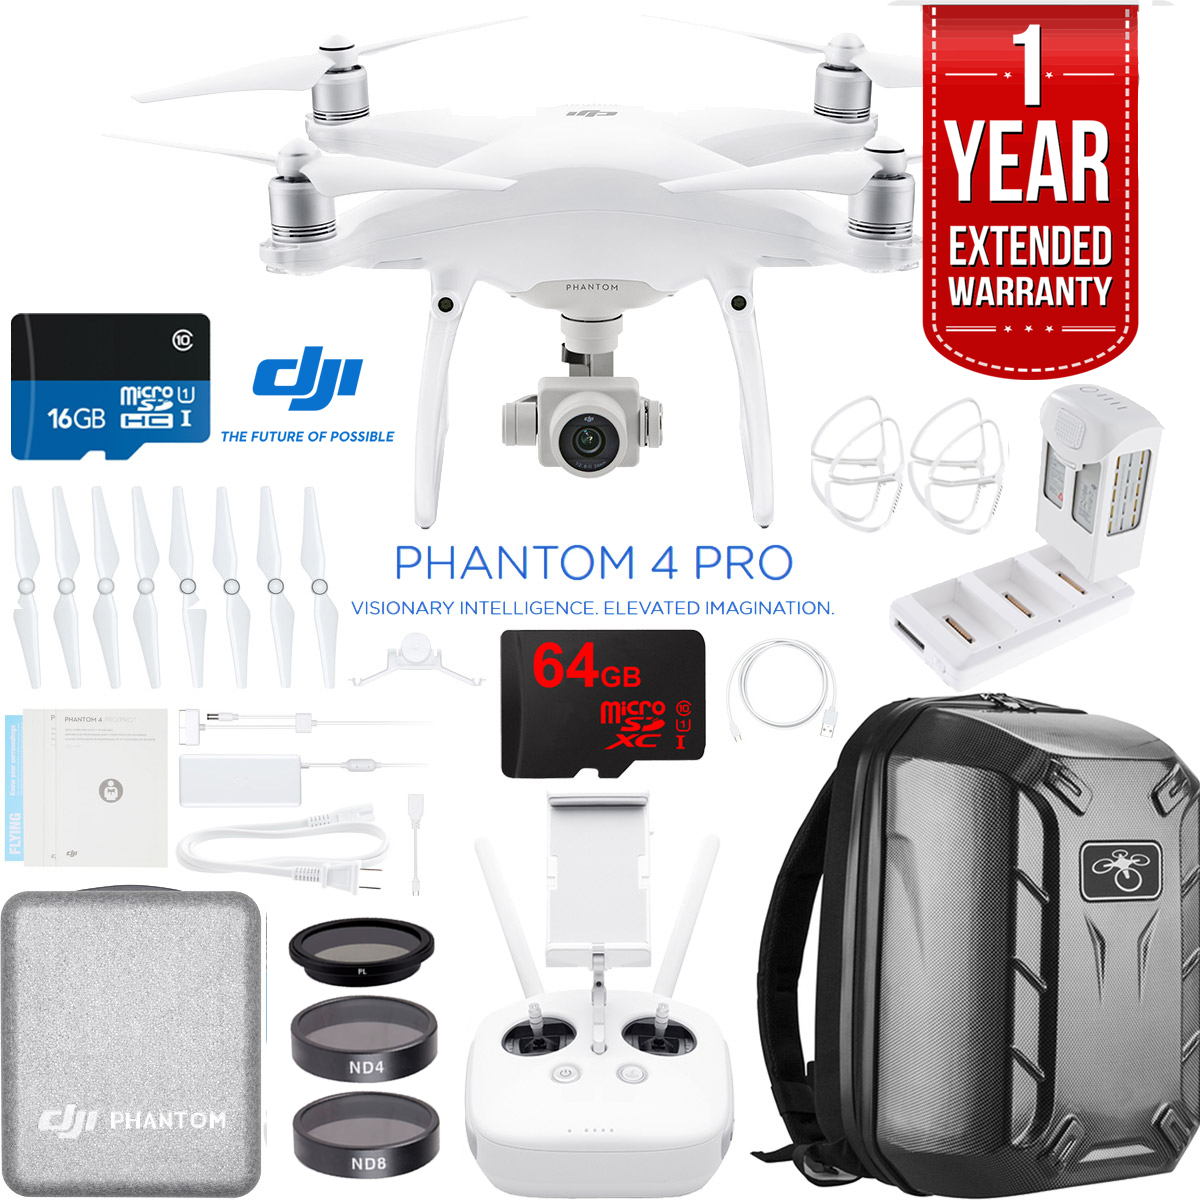 DJI Phantom 4 Pro Quadcopter Drone with Battery Charging Hub, Carbon Fiber Hardshell... by DJI